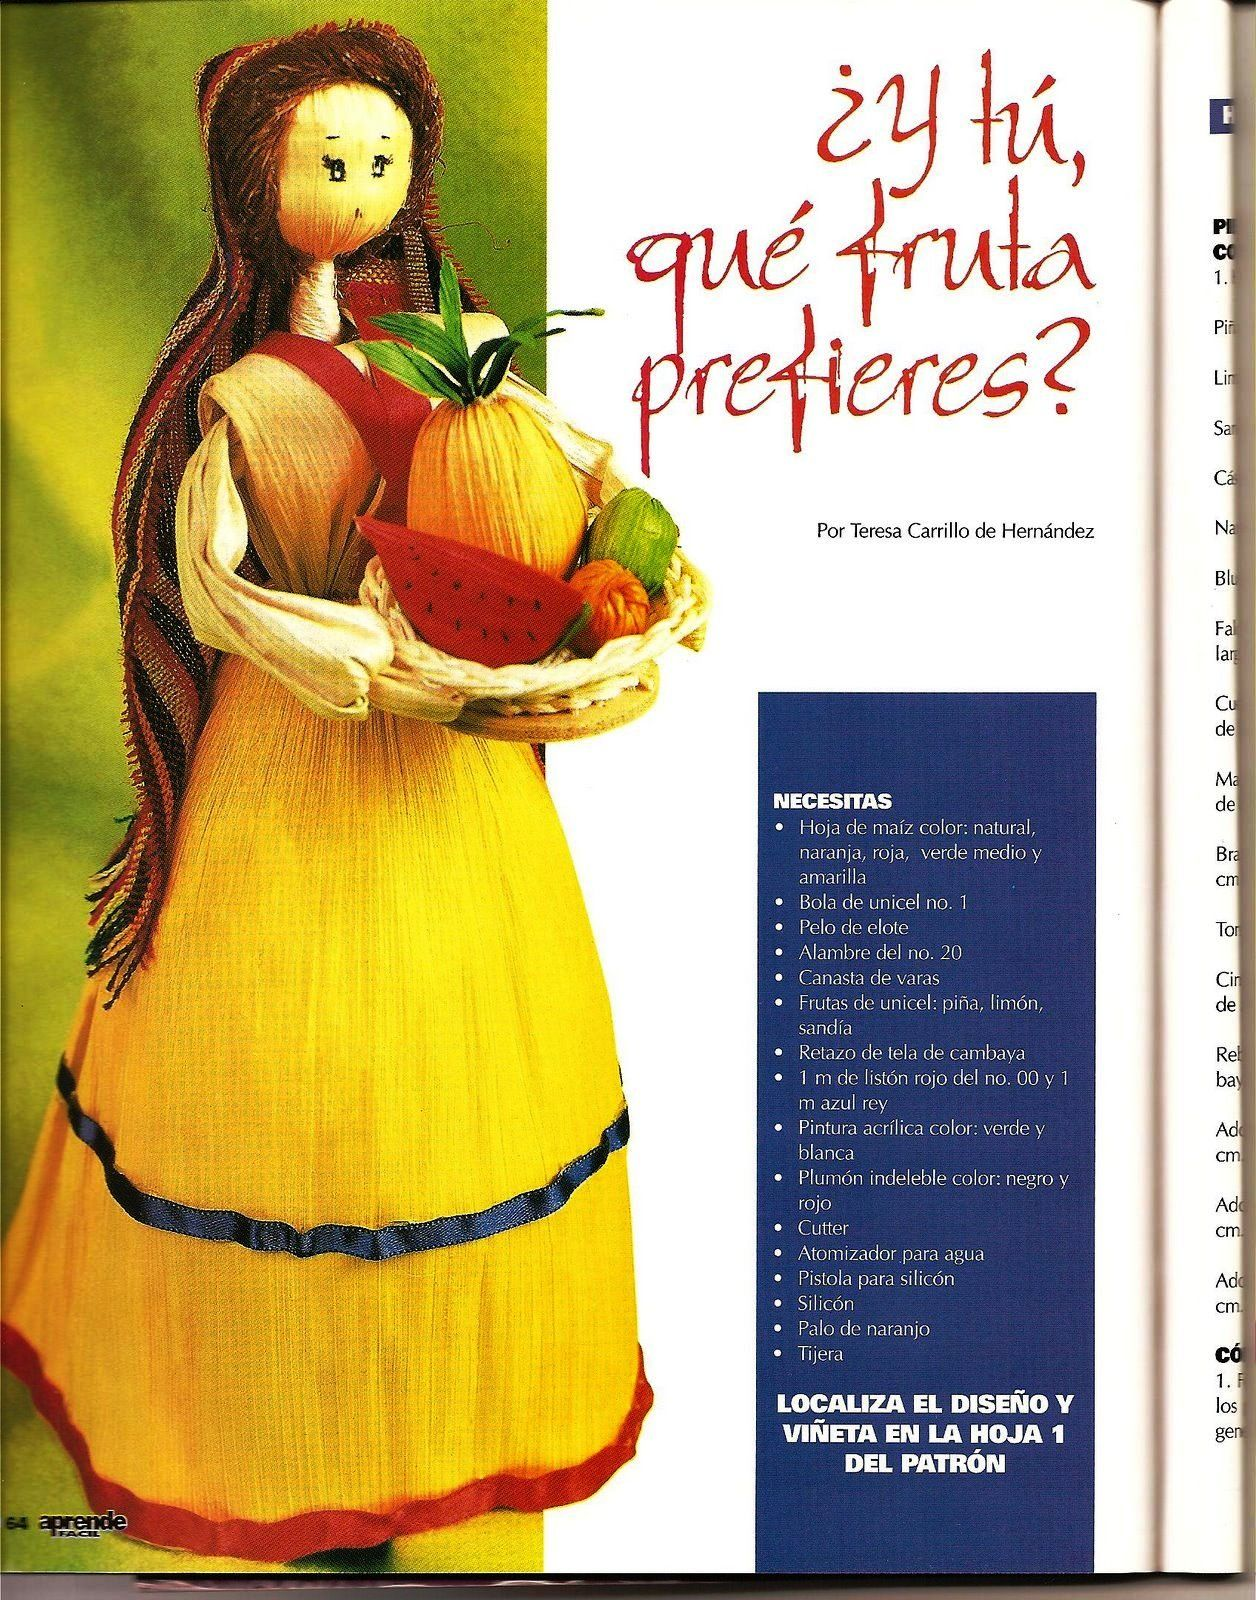 Pin By Teresa Ventura On Manualidades Corn Husk Dolls Corn Husk Crafts Corn Husk